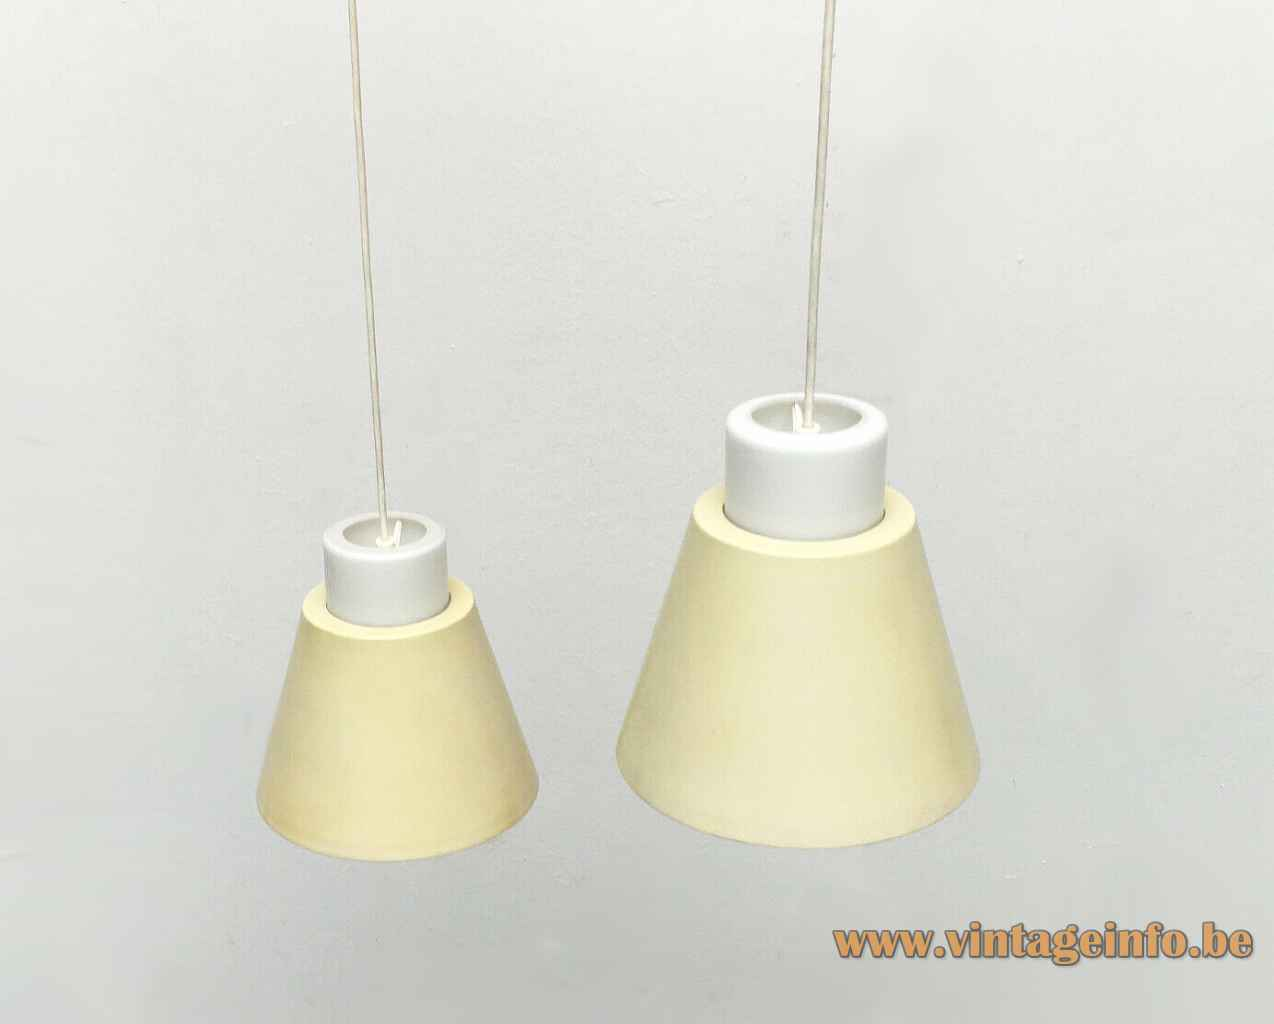 Staff pendant lamp 5635 frosted opal glass diffuser conical pale yellow metal lampshade 1950s 1960s Germany